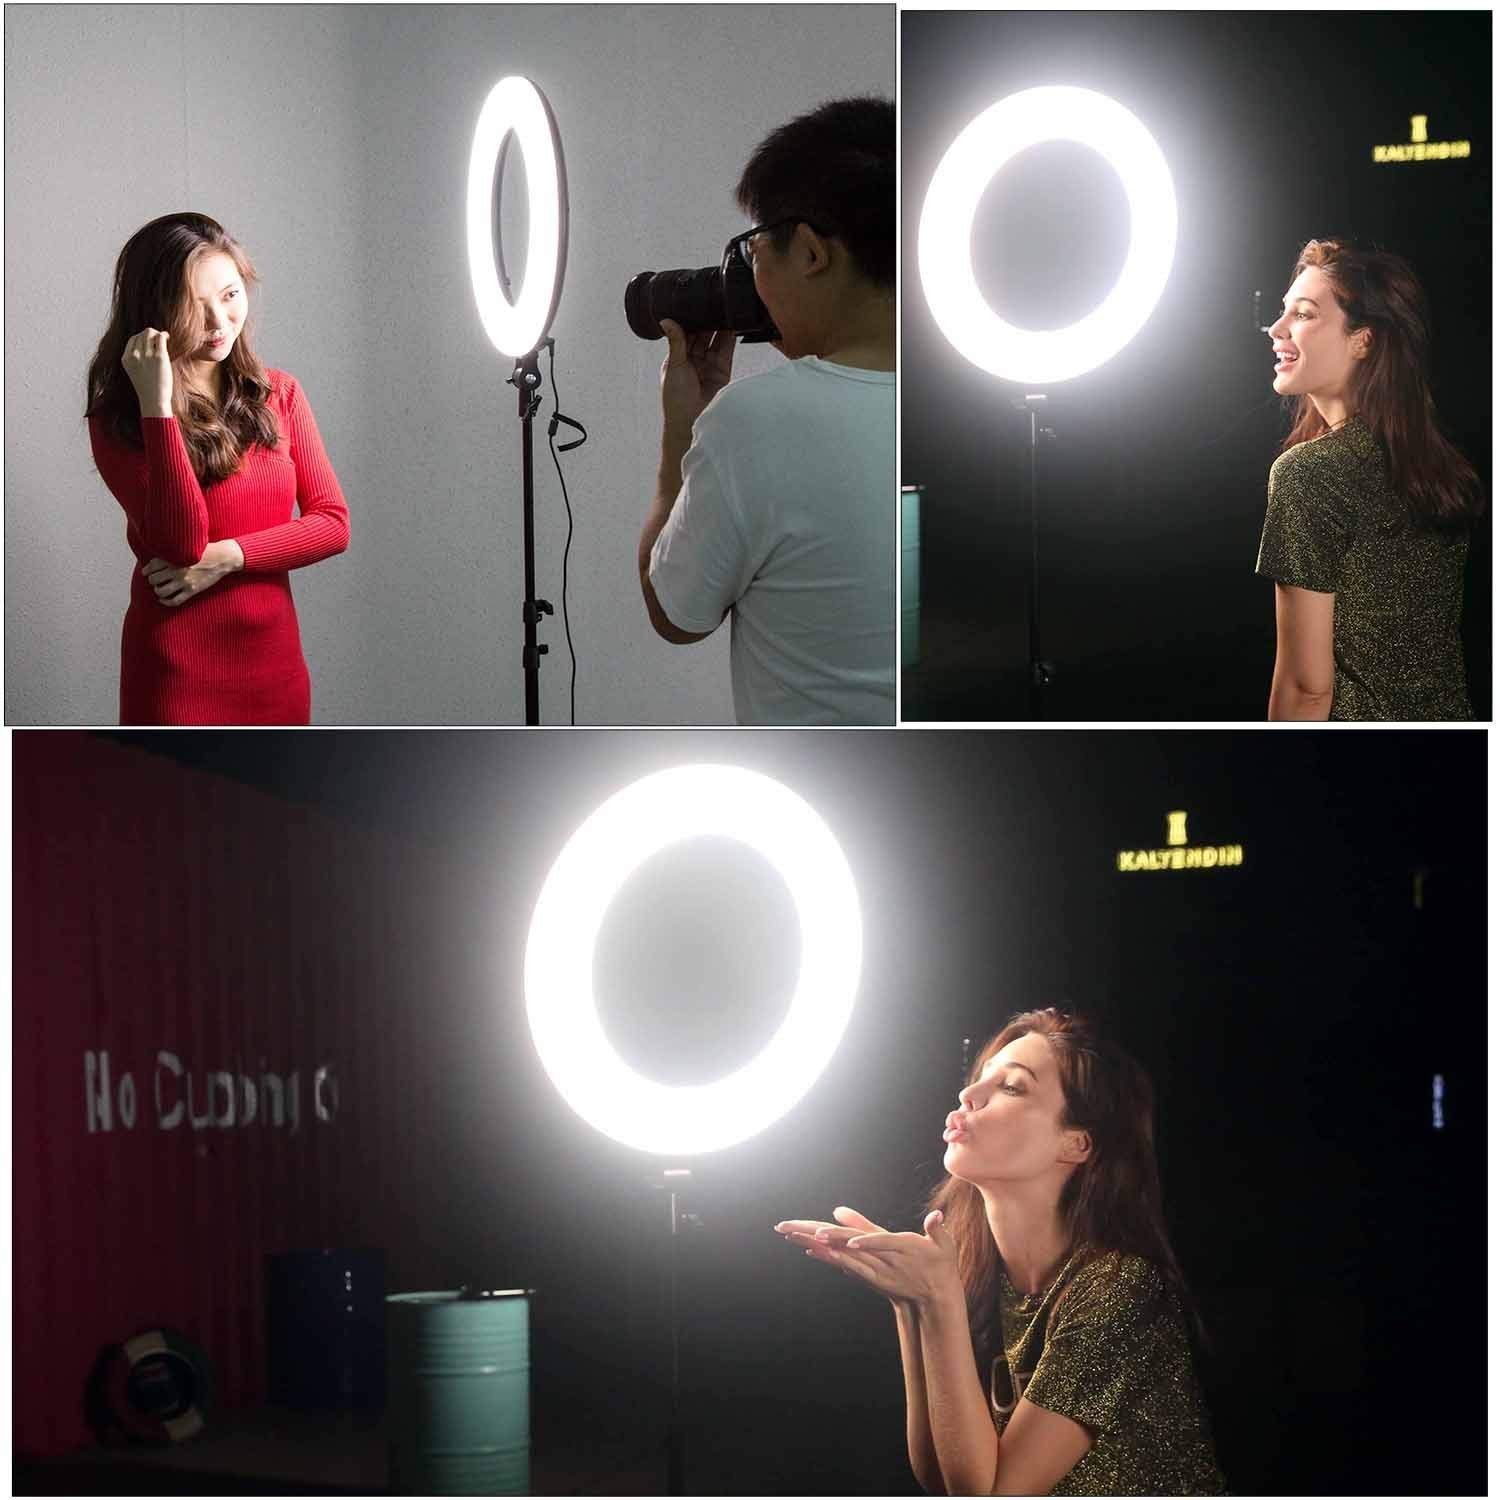 VILTROX Ring Light with Stand,18'' LED Dimmable Fluorescent Ring Light, 45W Circle Light VL-600T for Photography Video YouTube Vimeo Portrait Lighting Live Streaming, with Remoter